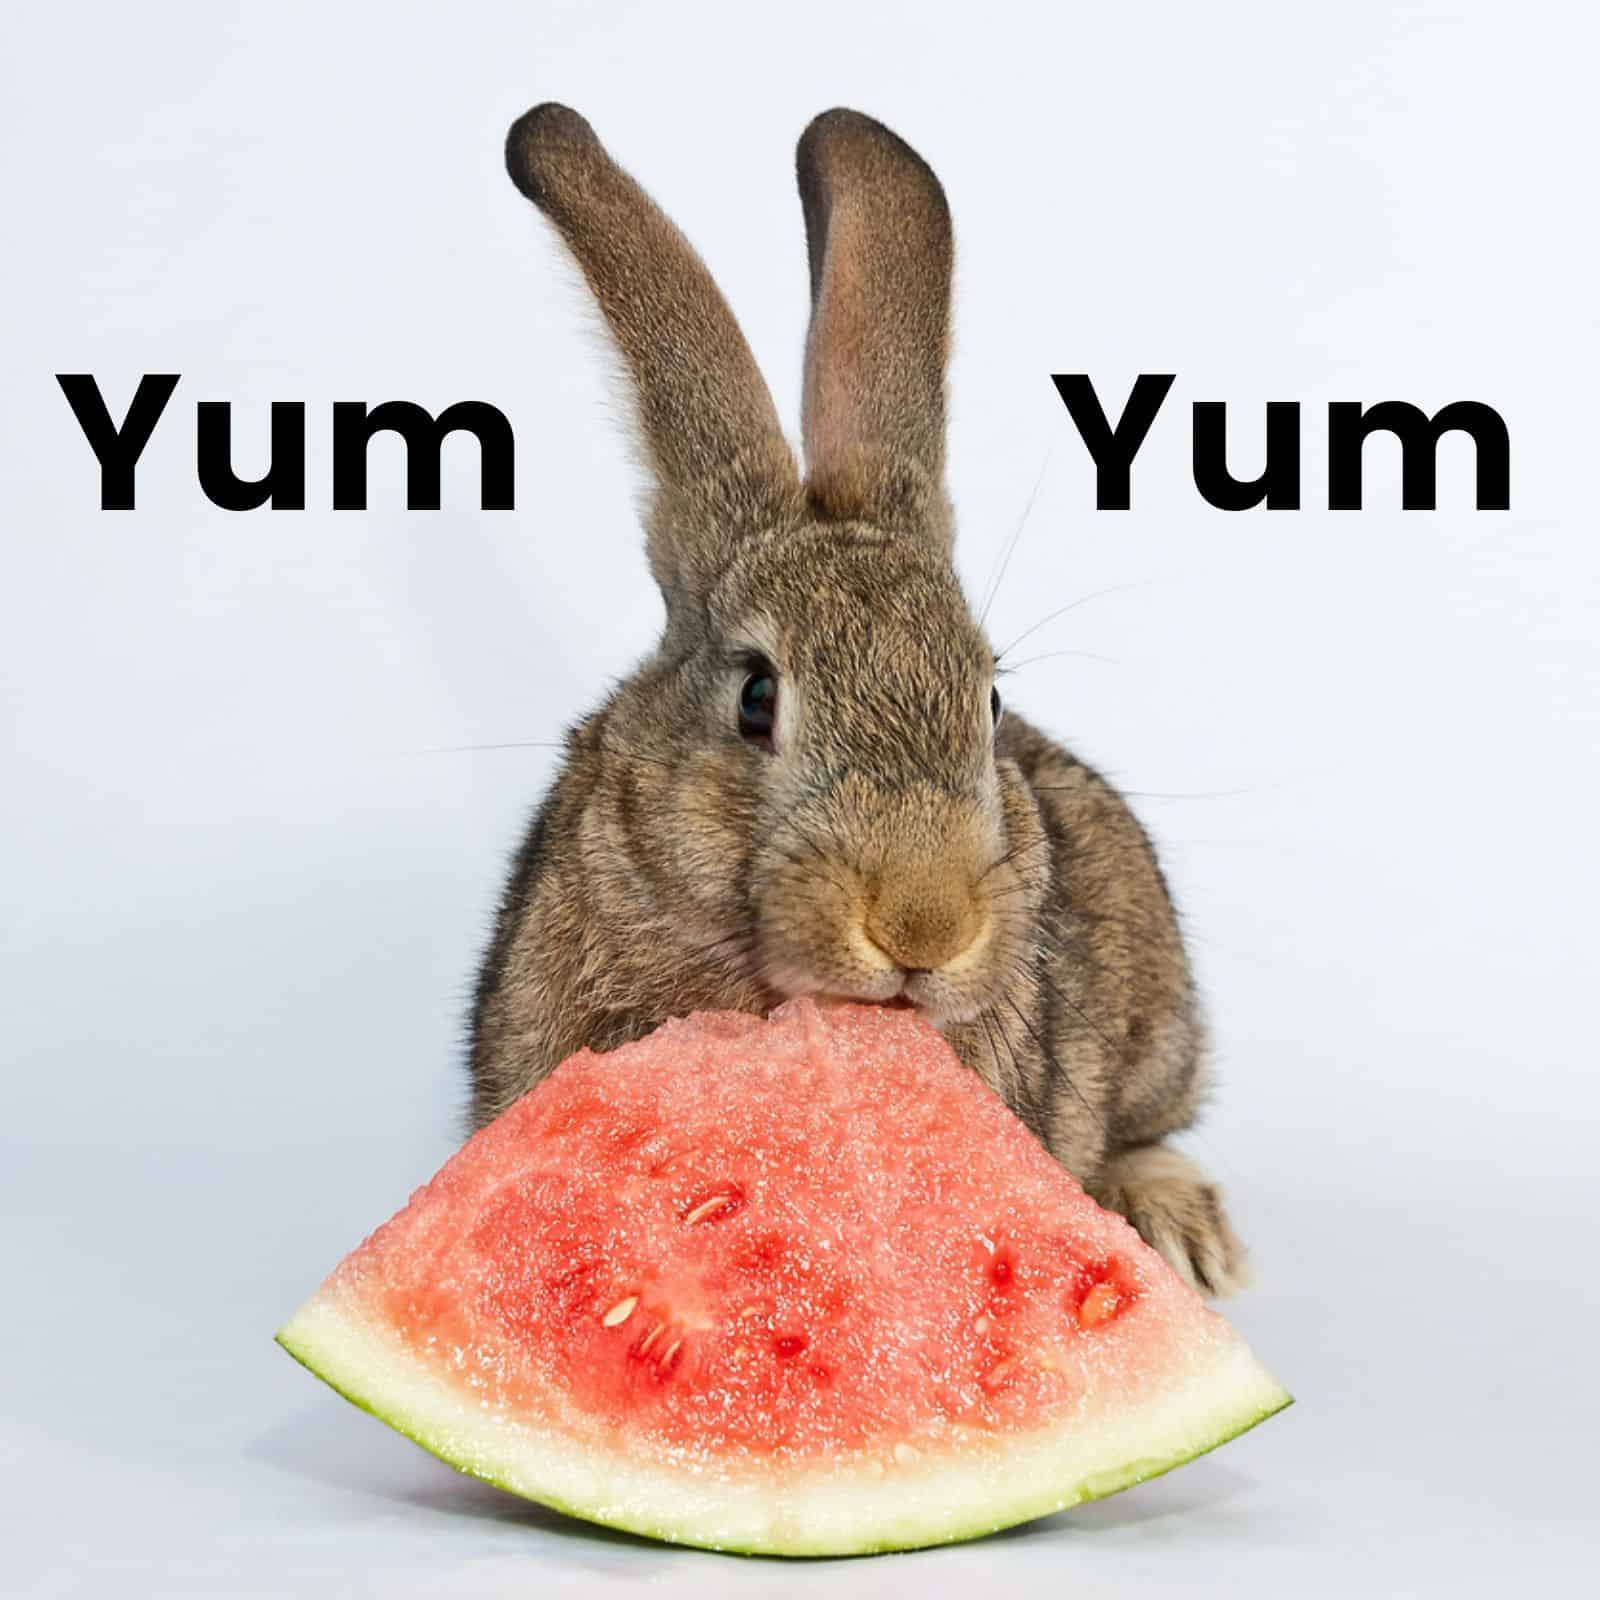 Brown Rabbit Eating Watermelon